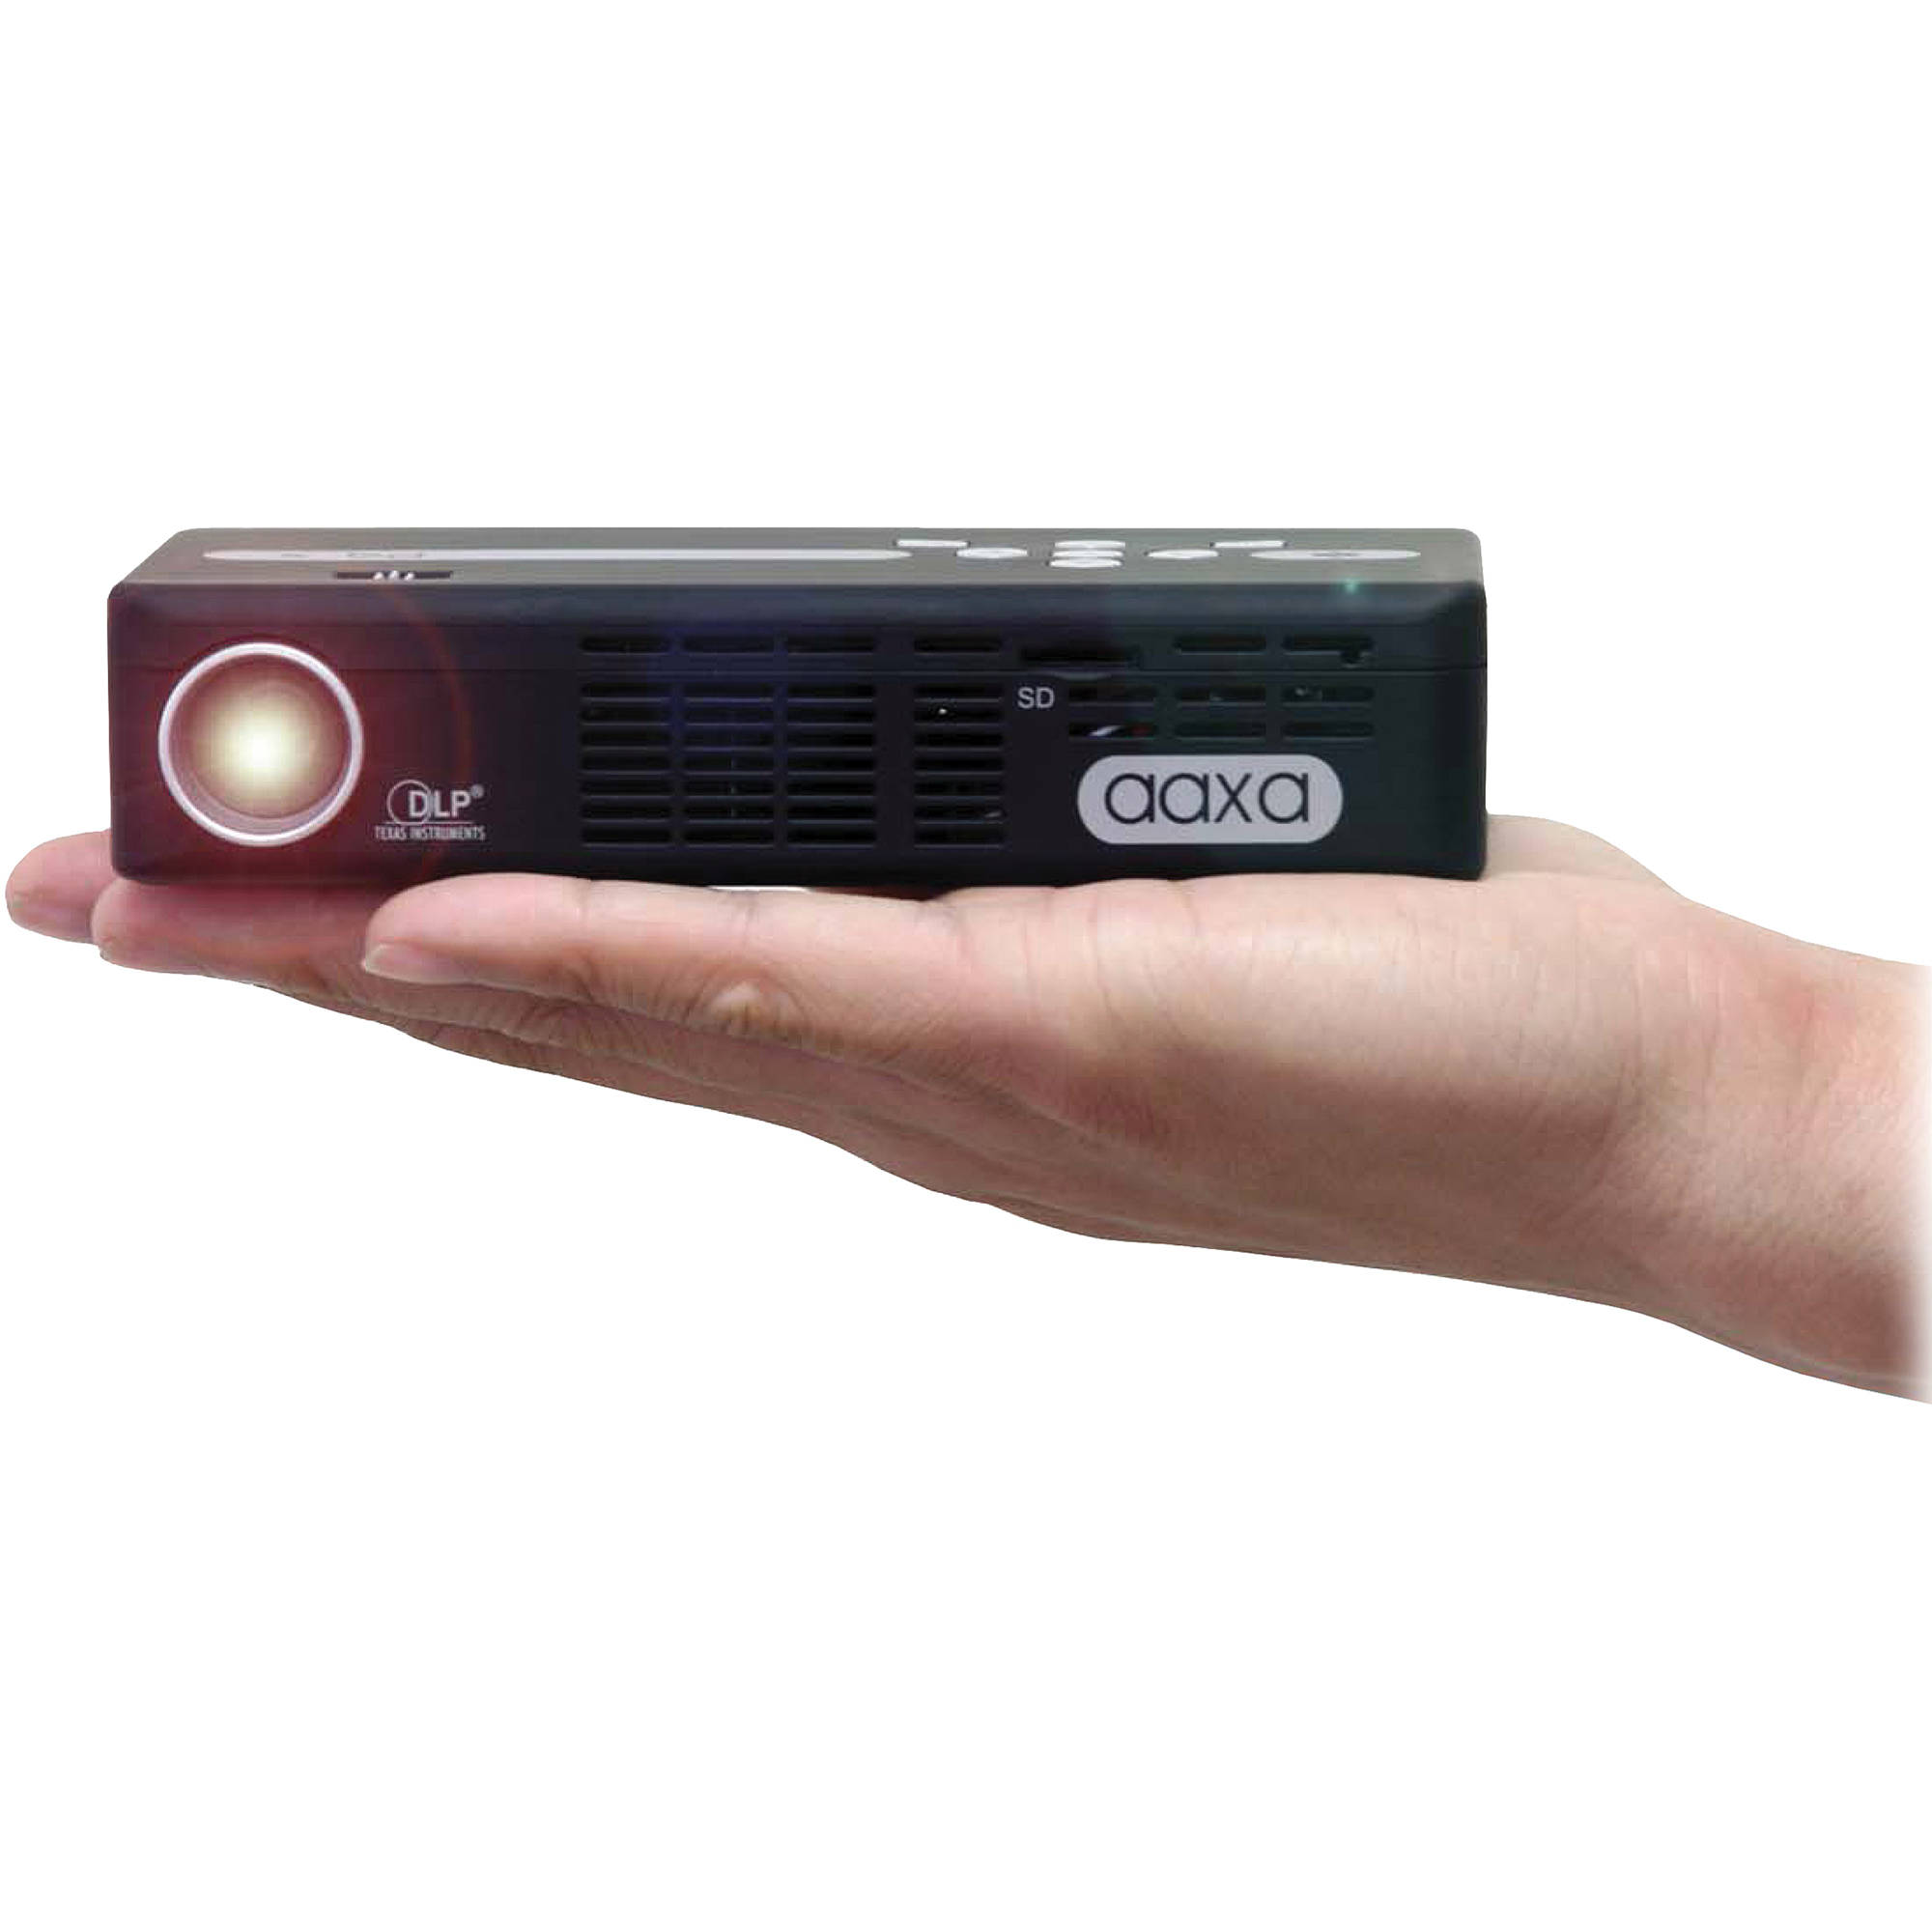 Aaxa technologies p4 x 125 lumen wvga pico projector kp 50002 for Best pico projector 2016